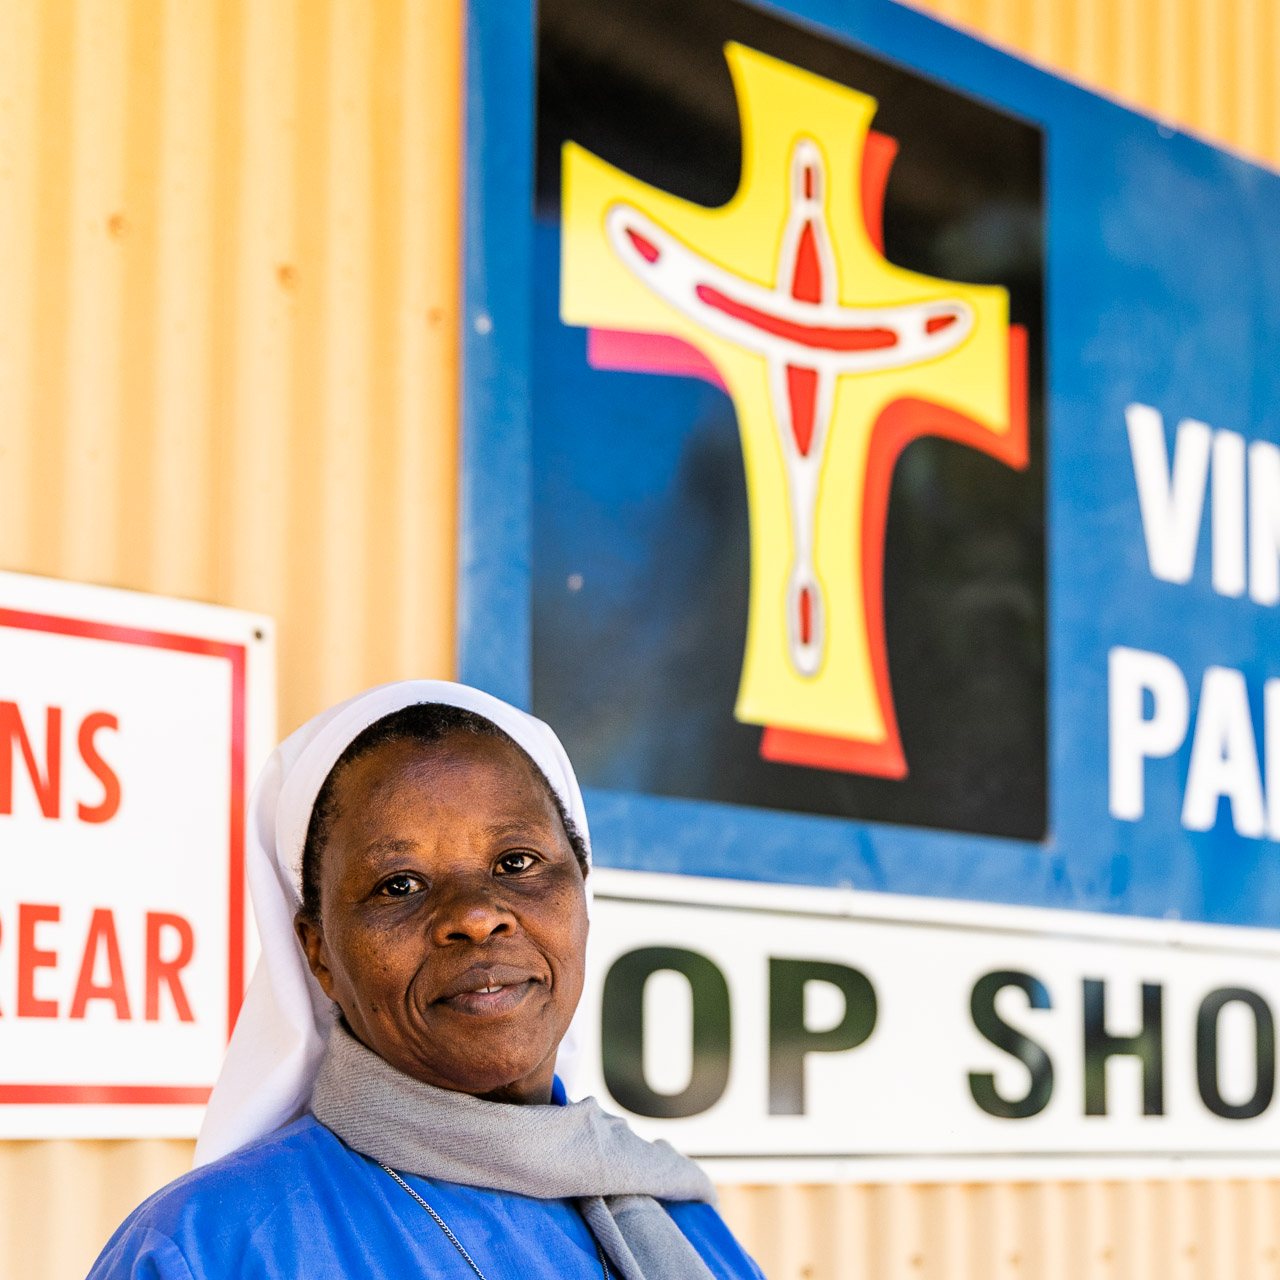 Sister Mary is in Broome from Kenya for four years, working at the St Vinnies Op Shop